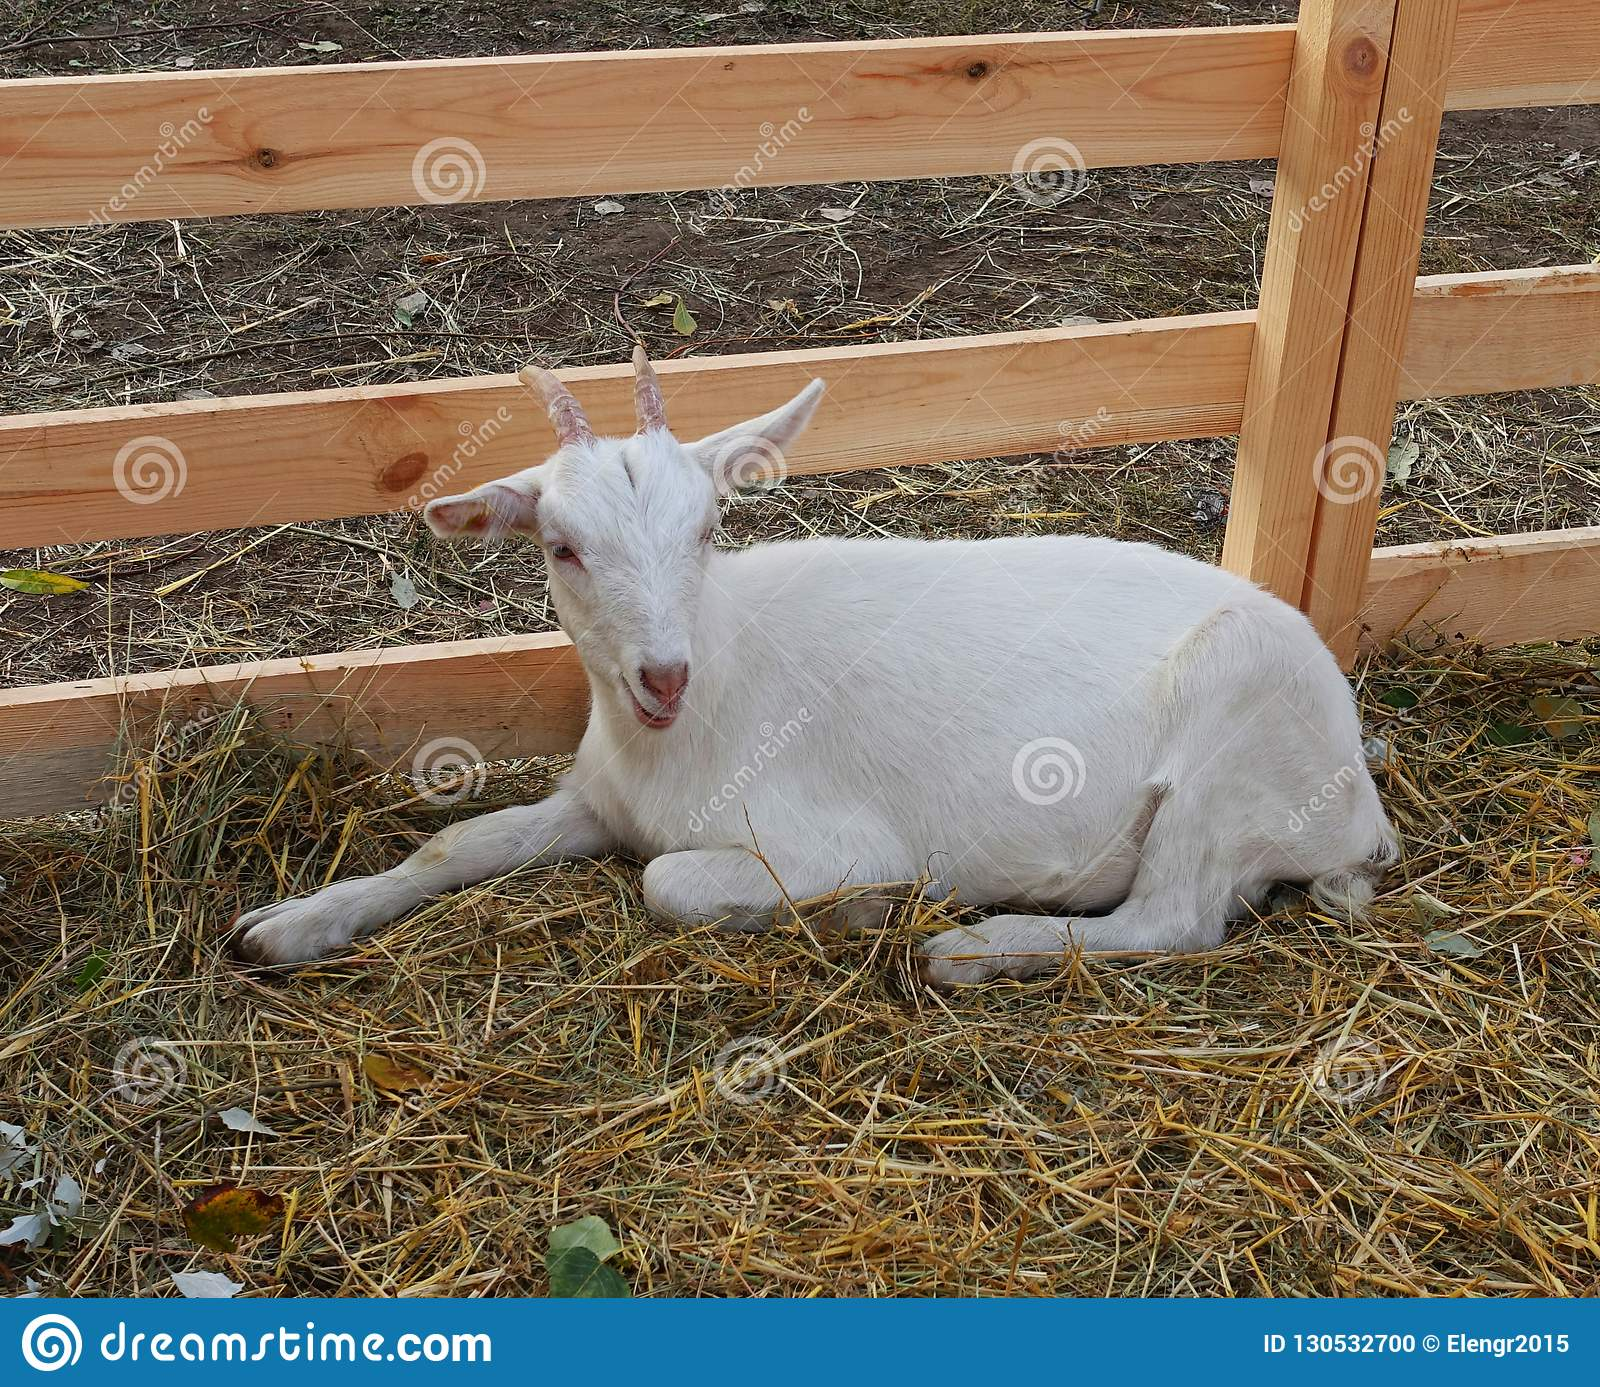 Young goat in the aviary